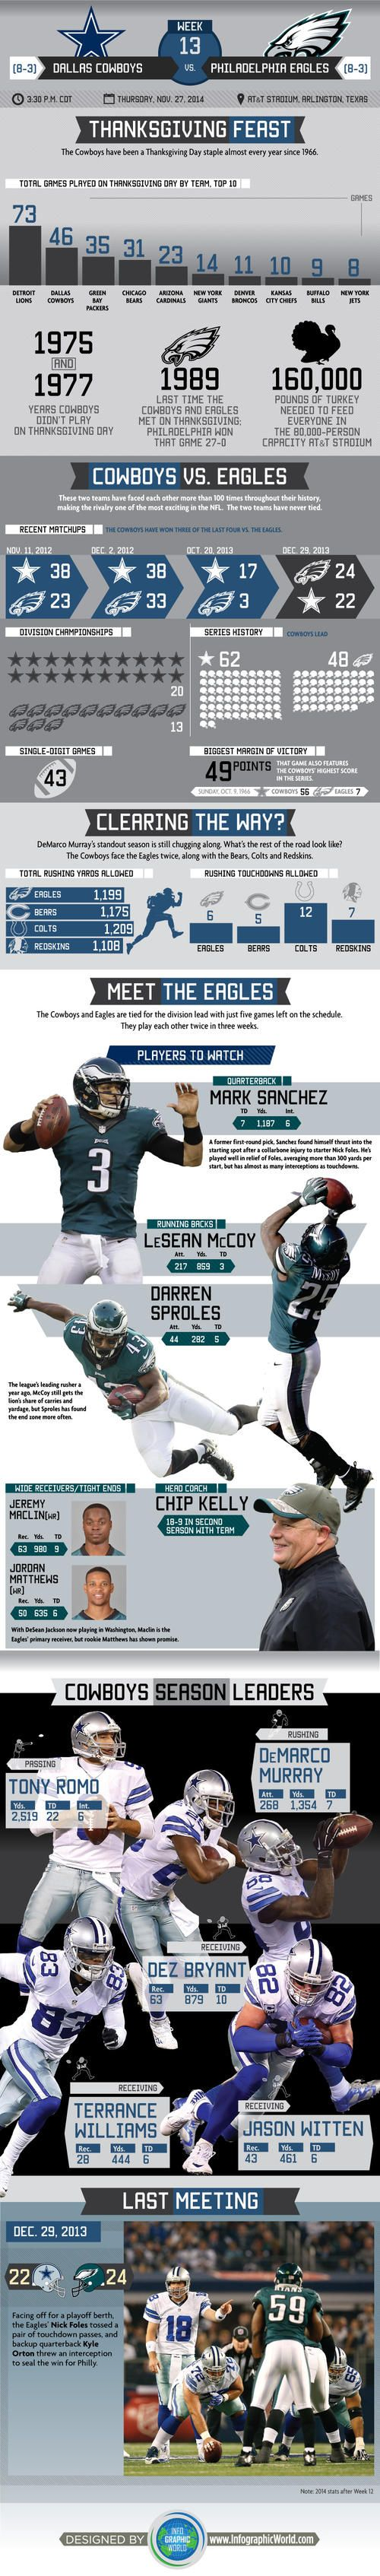 Infographic: Visual Breakdown Of Thanksgiving Stats & Eagles Leaders #PHIvsDAL #DallasCowboys #Thanksgiving